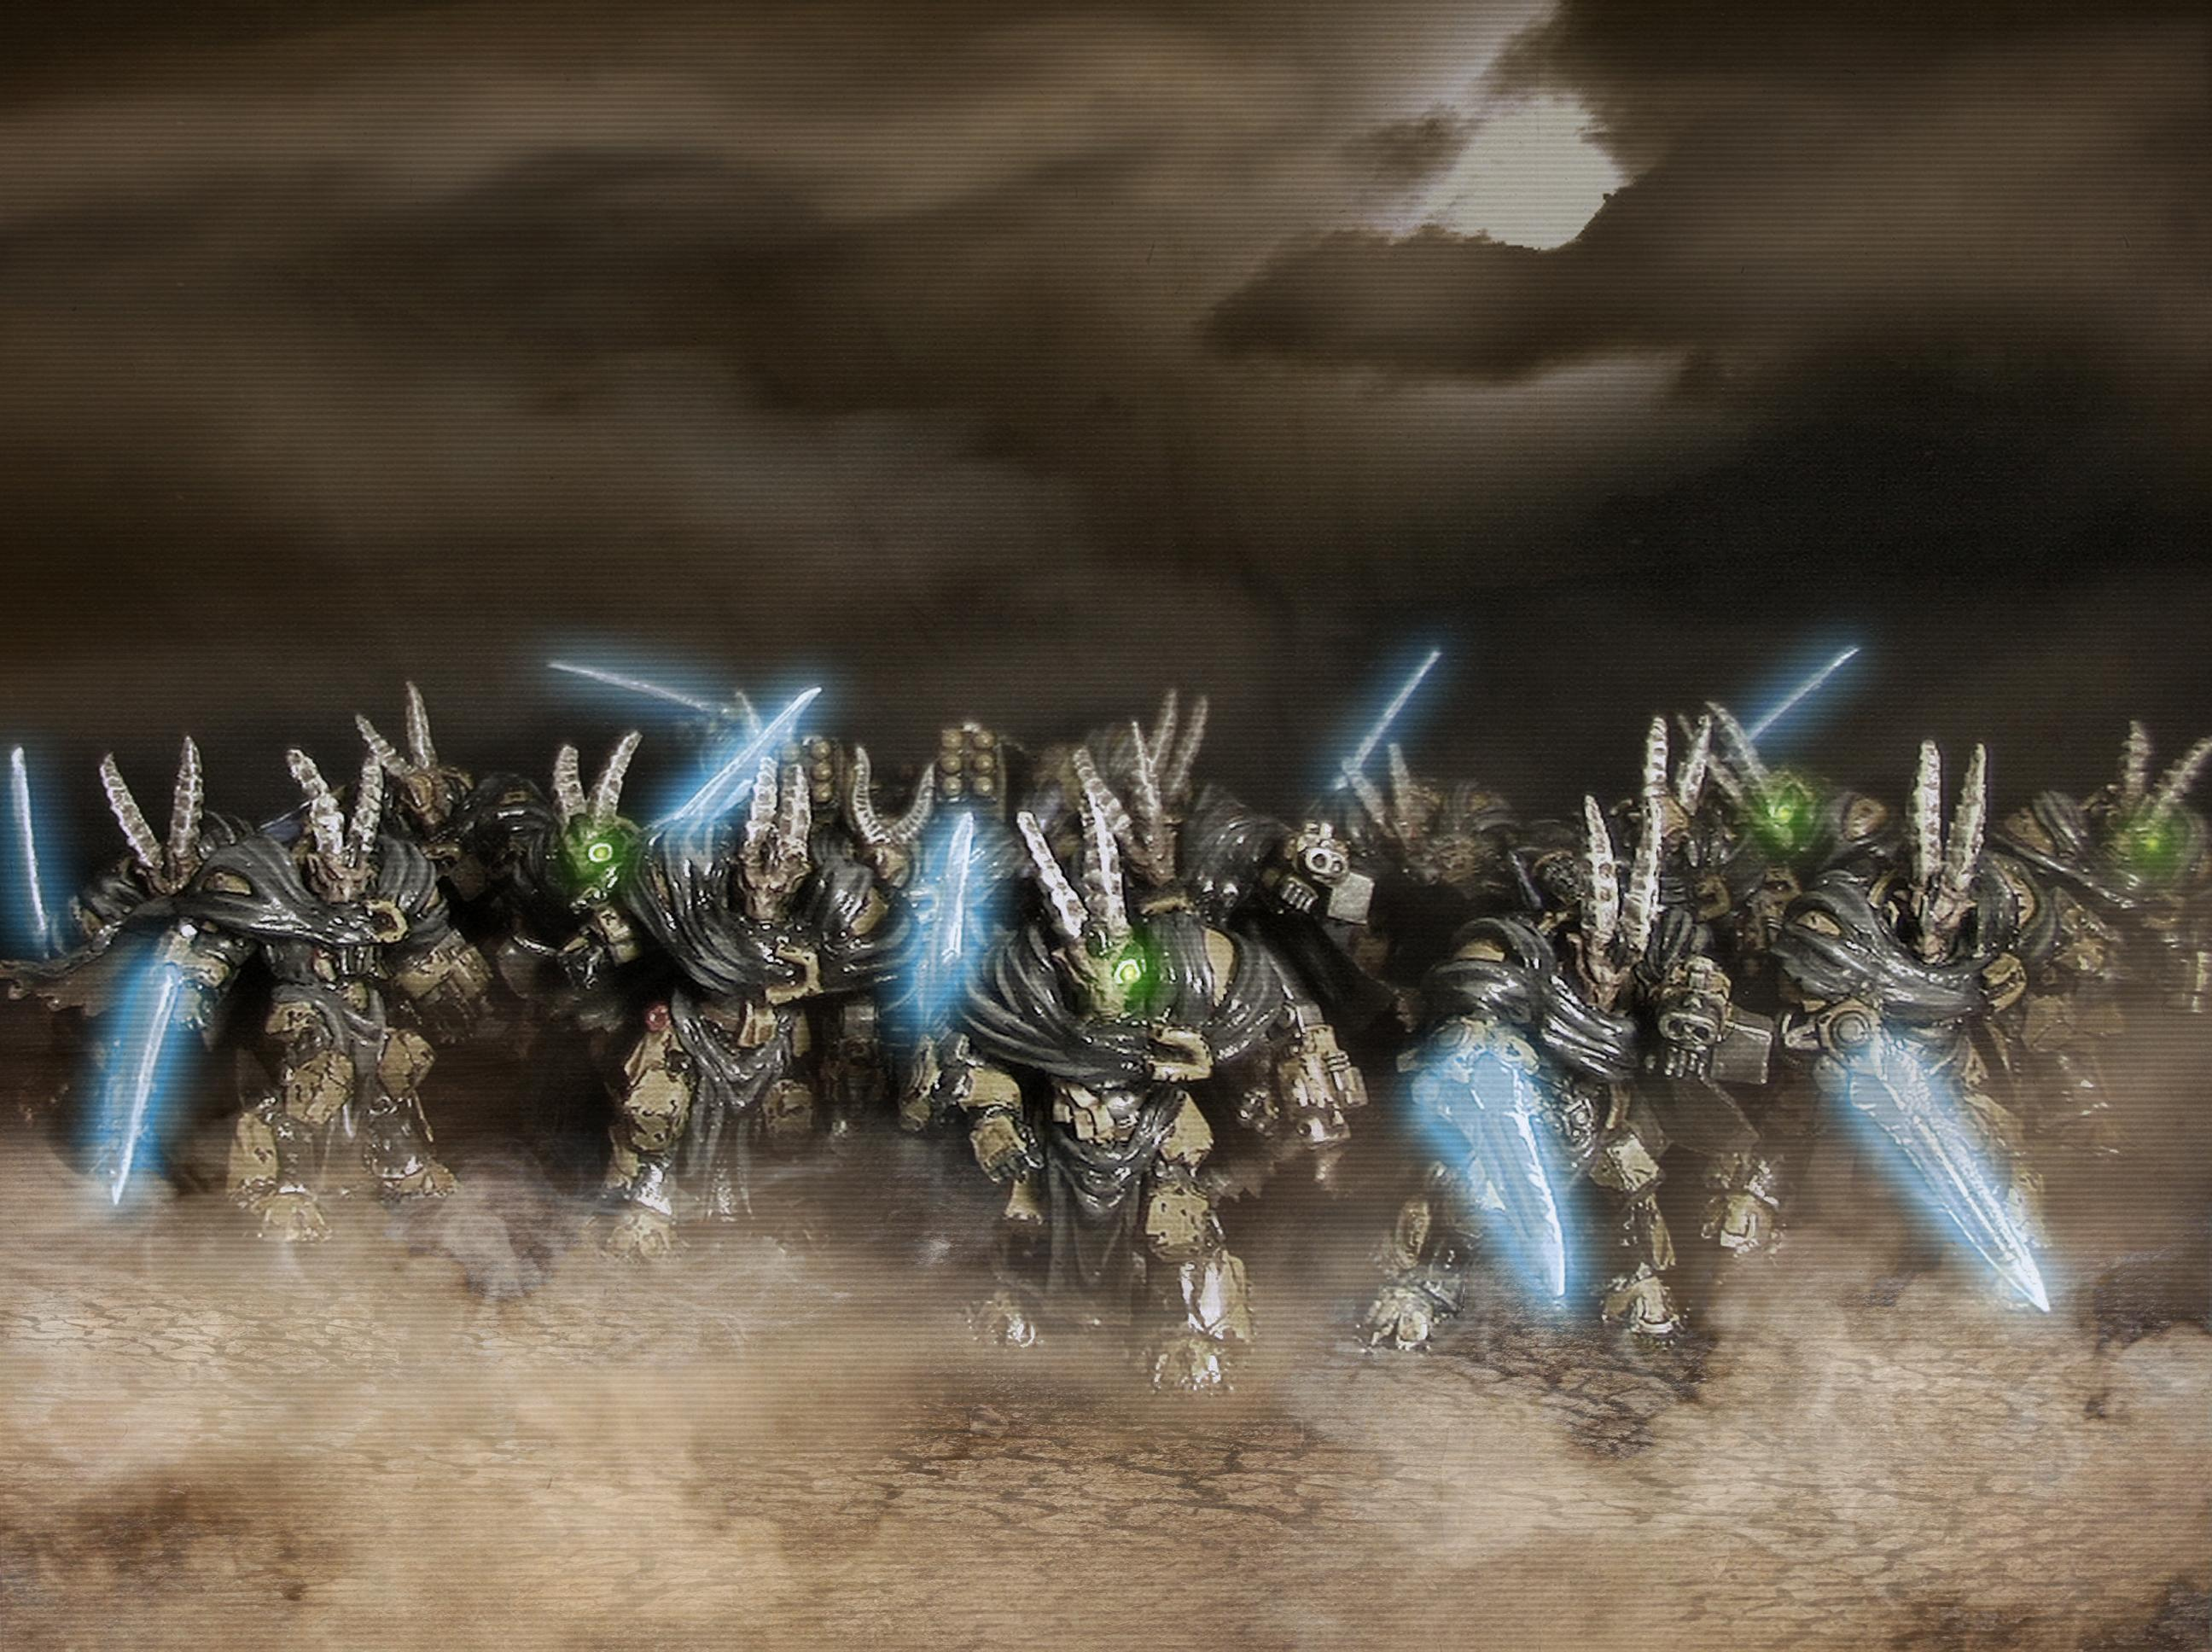 Army, Beast, Beastmen, Blade, Frost, Guards, Metal, Photoshop, Space, Space Marines, Terminator Armor, Warhammer 40,000, Wolf, Wolves